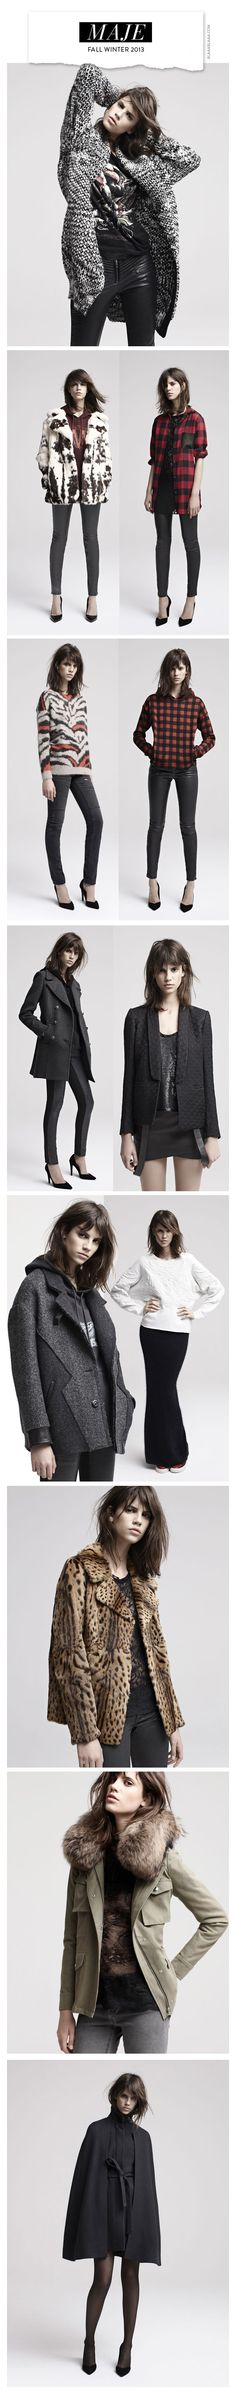 Maje Fall Winter 2013